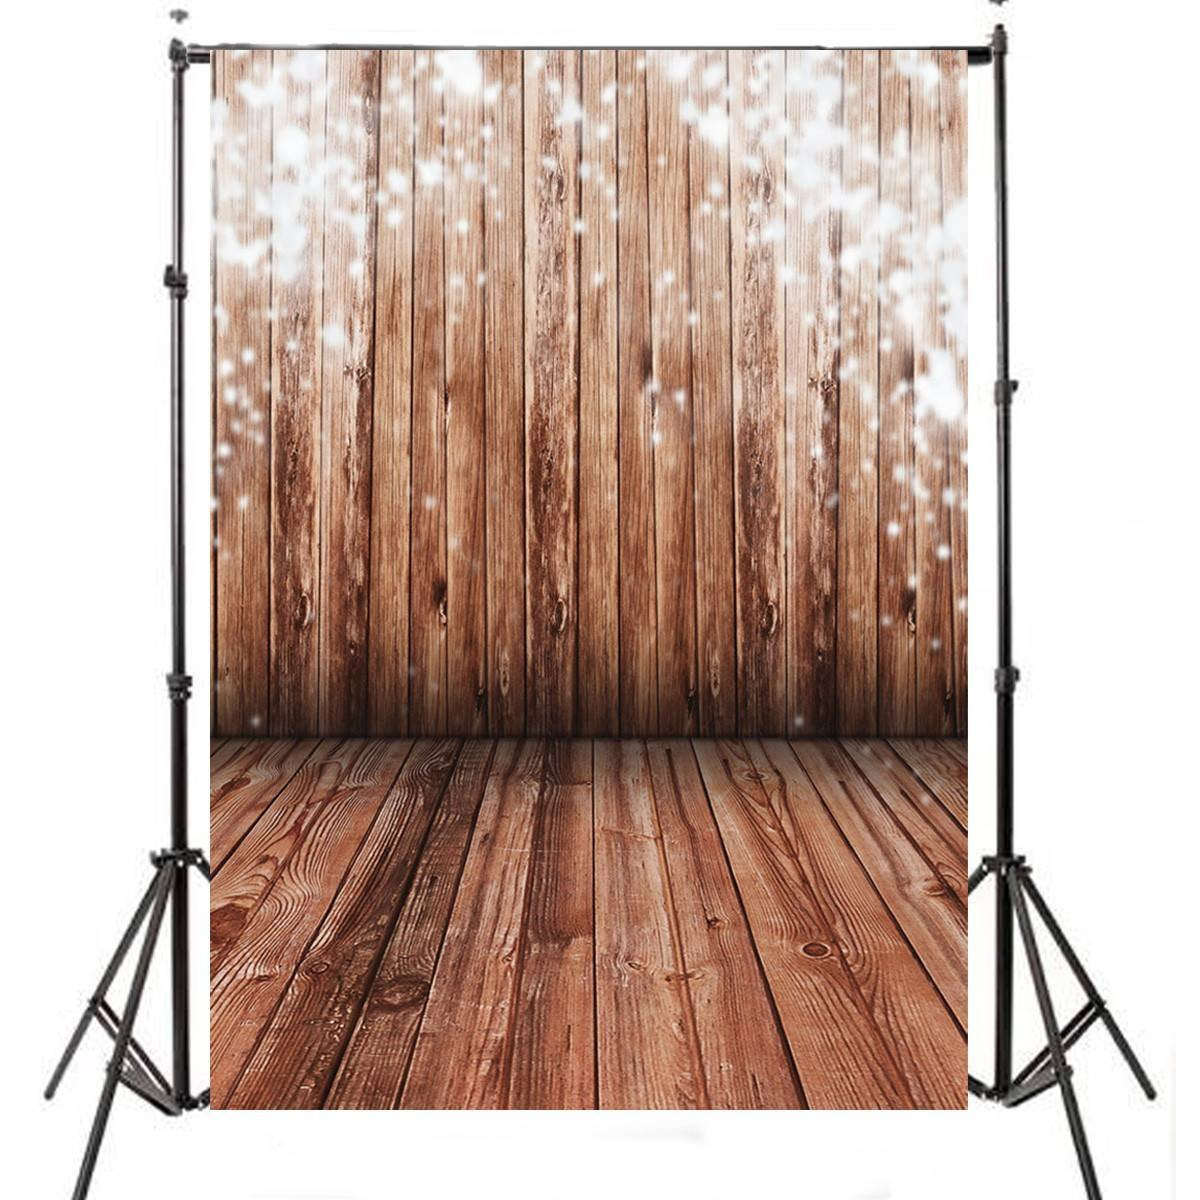 5x7FT Wood Wall Vinyl Photography Backdrop Photo Background Studio Props High Quality New Best Price fumagalli светильник уличный наземный fumagalli lot noemi e35 113 000 aye27